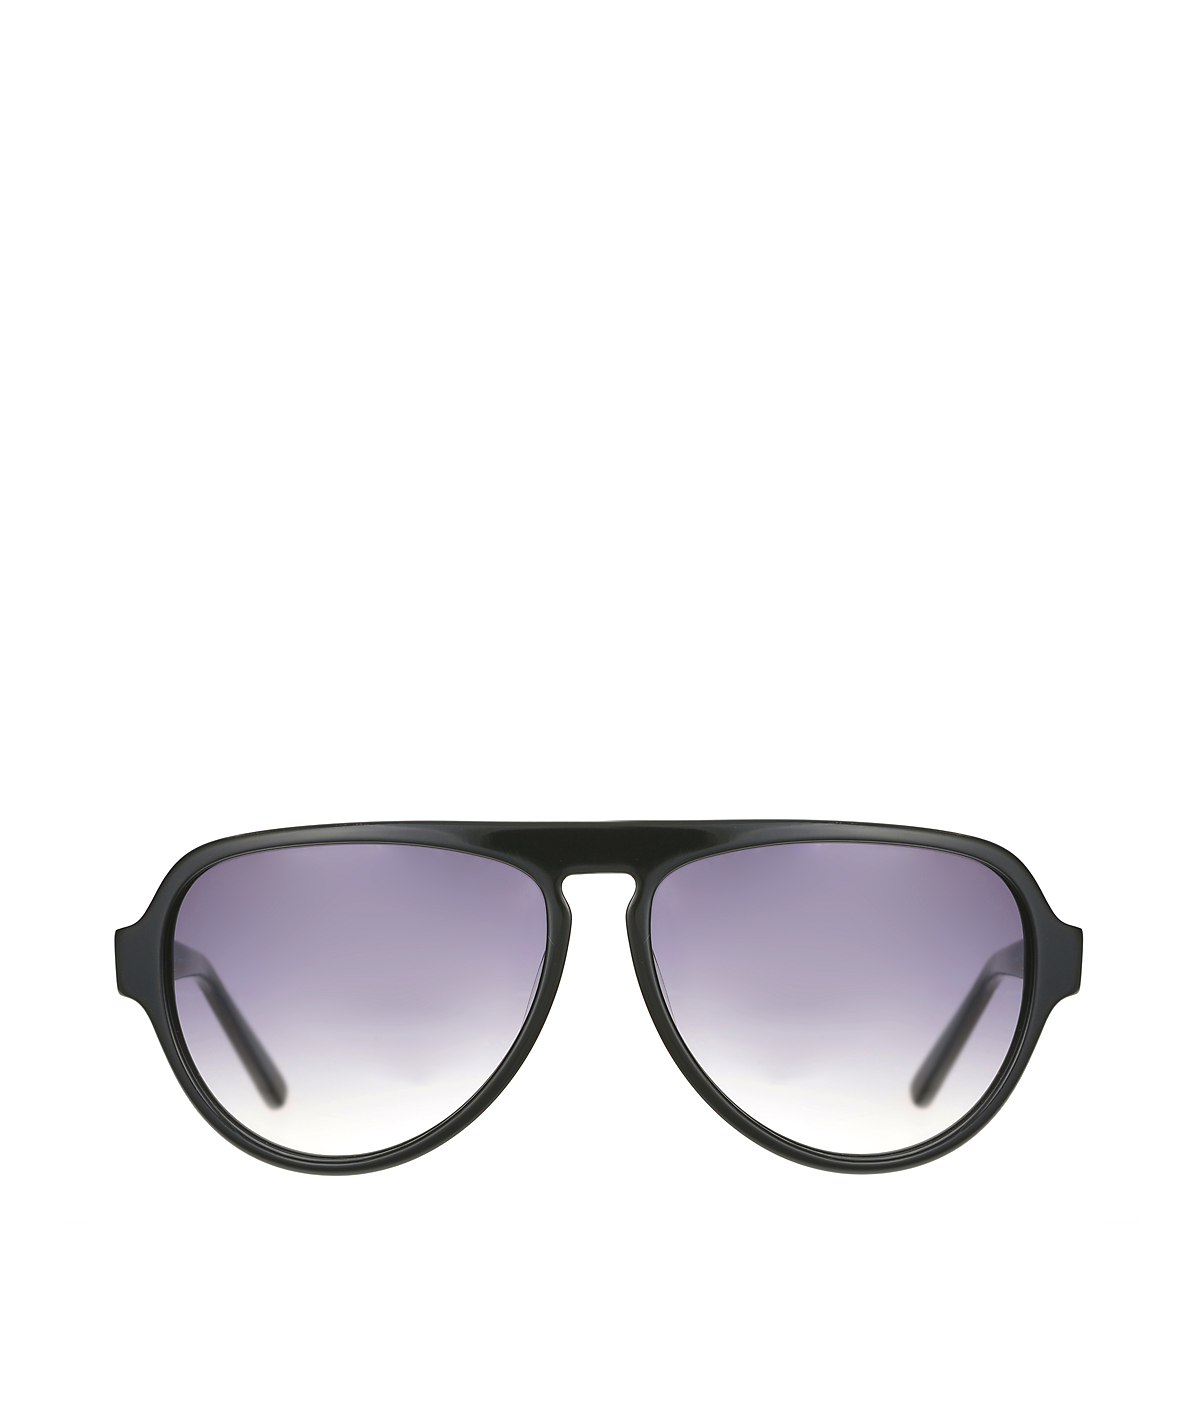 Aviator sunglasses 10551 from liebeskind